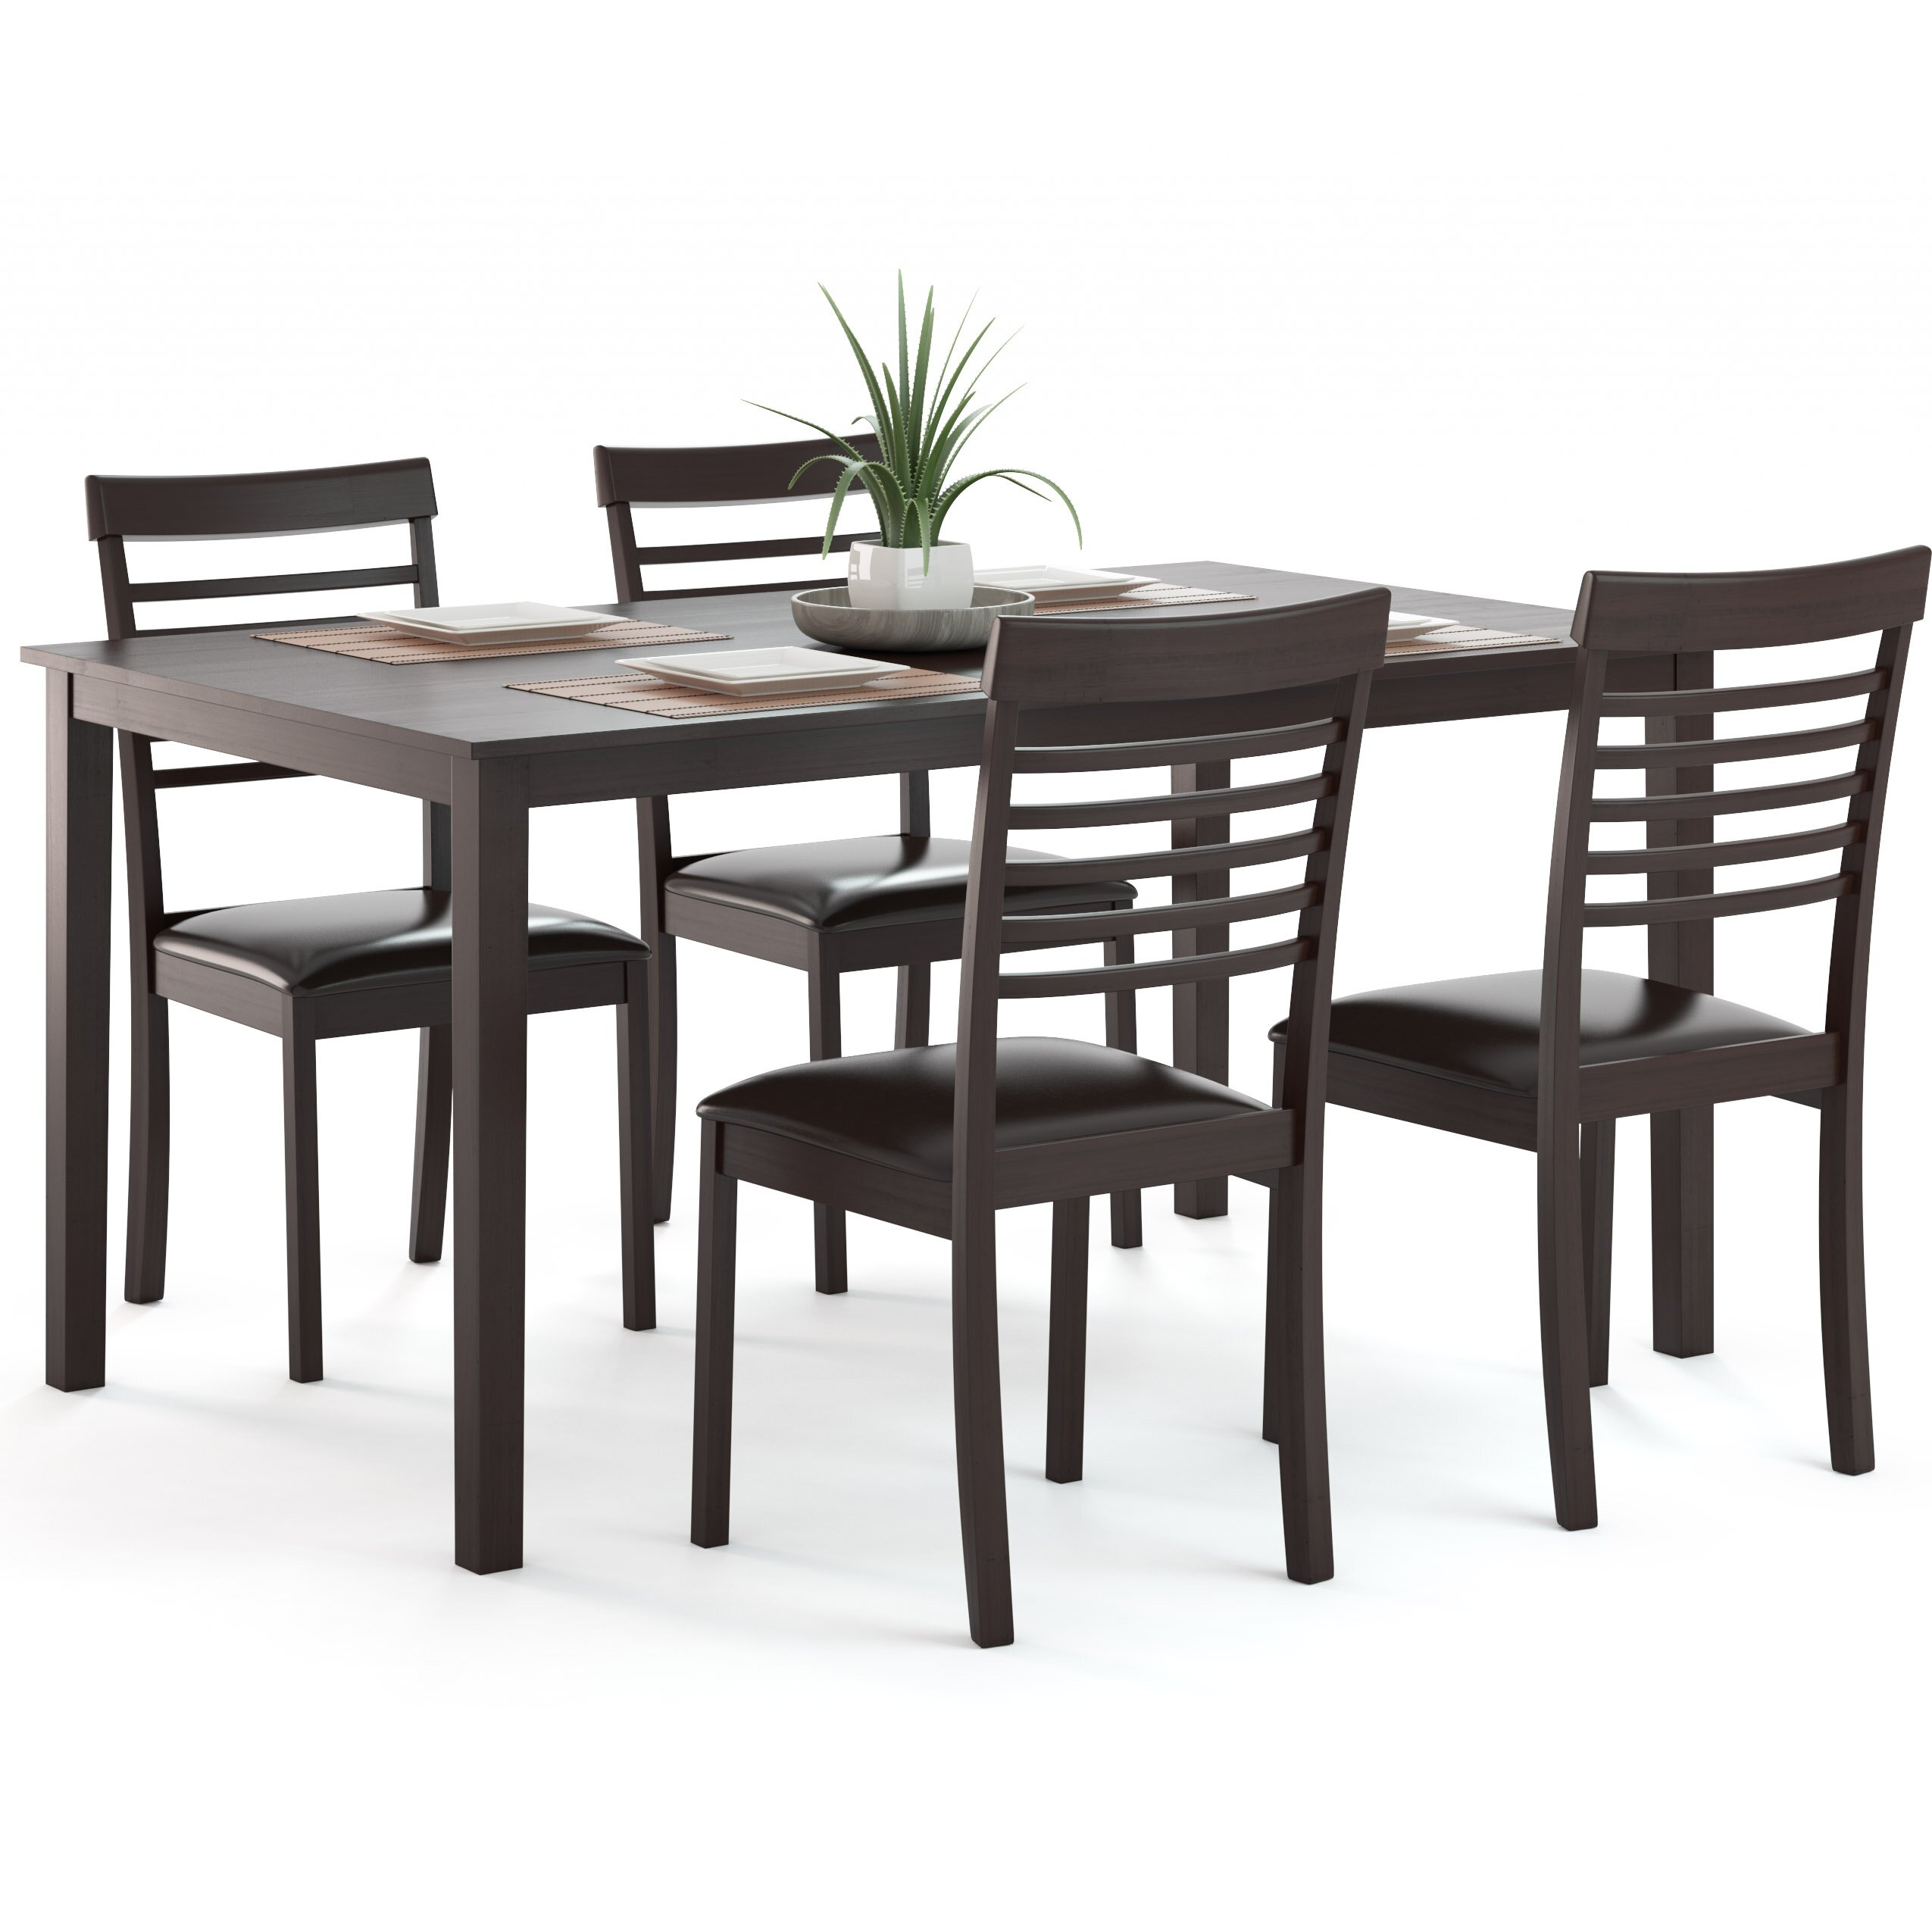 Corliving dining table reviews for Wayfair dining table